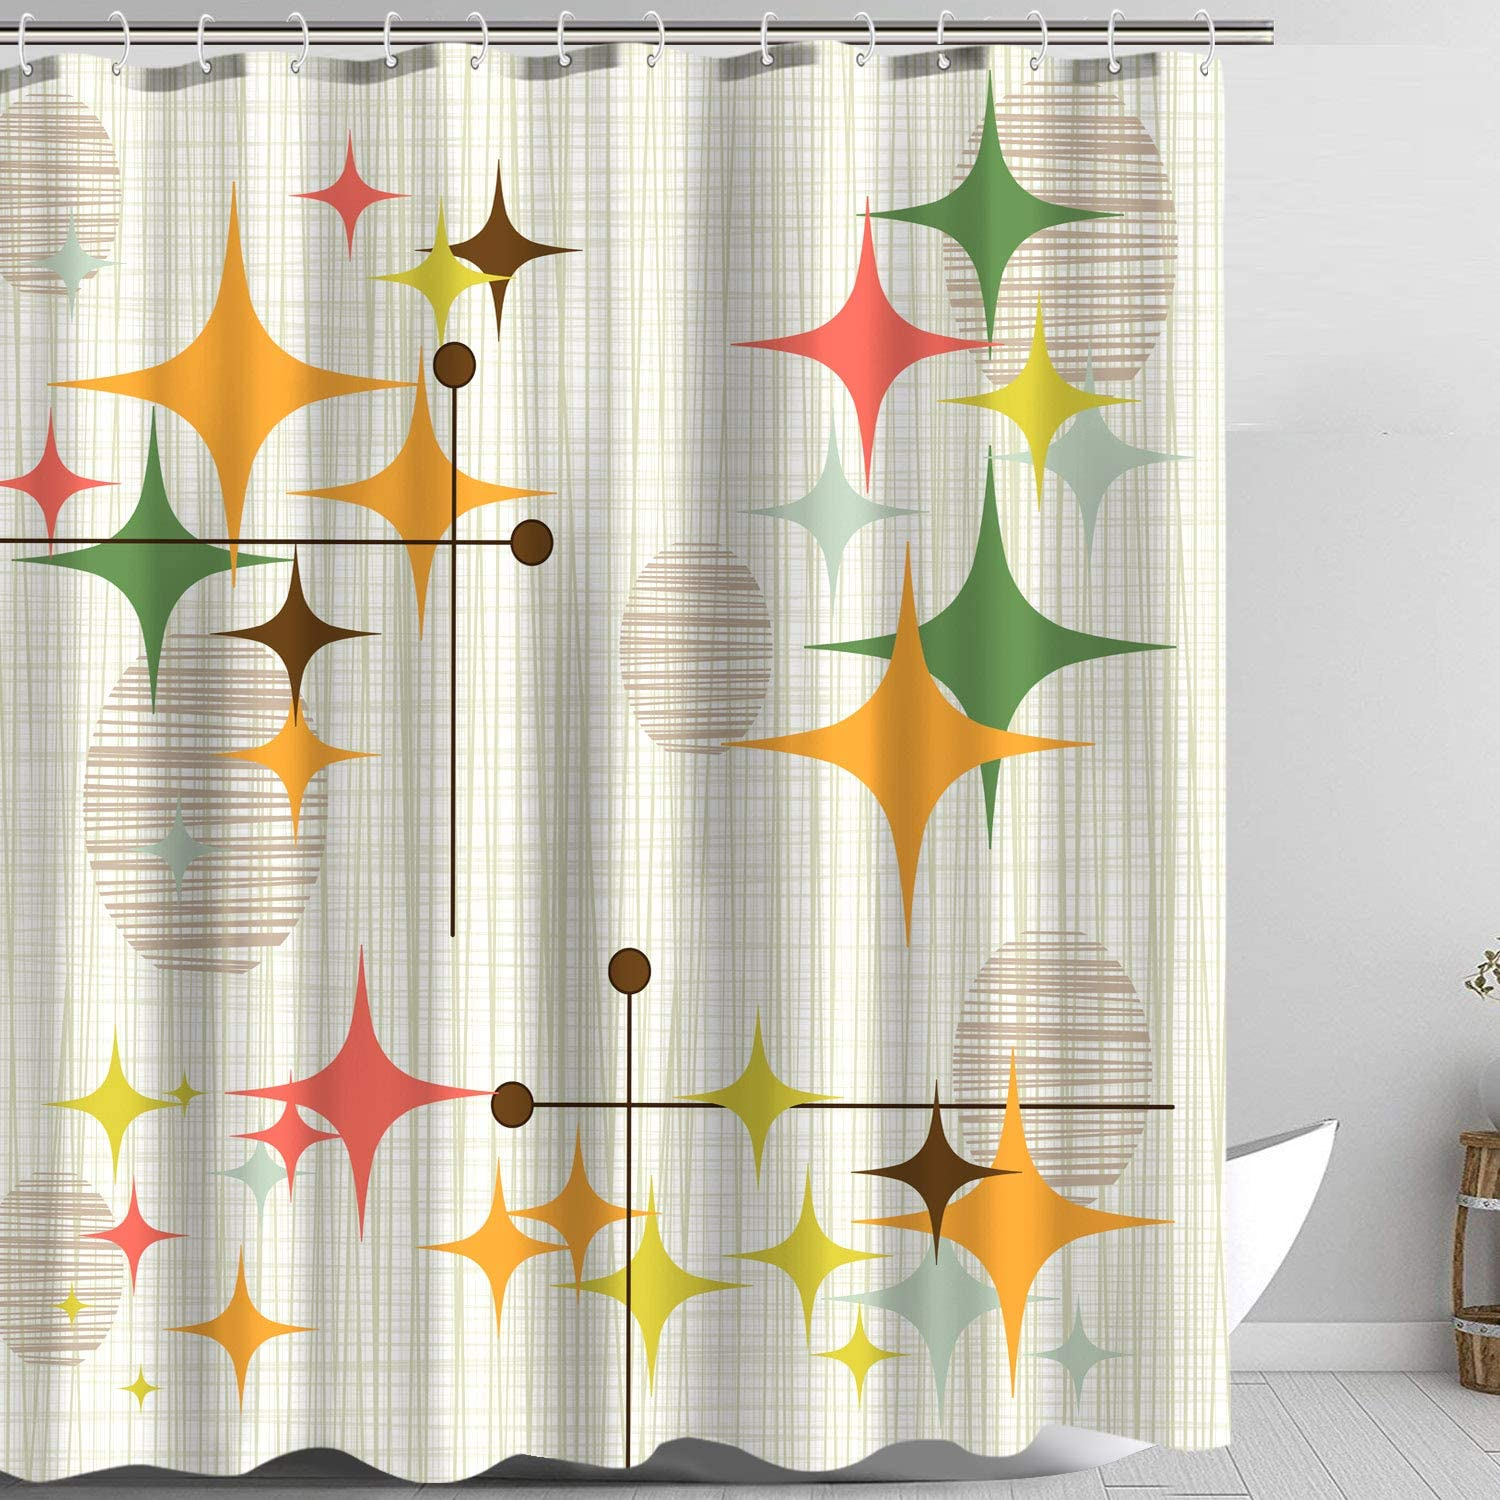 Zussun Stars Shower Curtain Set Bathroom Fabric Fall Curtains Waterproof Home Decor Bathroom Accessory Sets with 70inx69in Standard Size